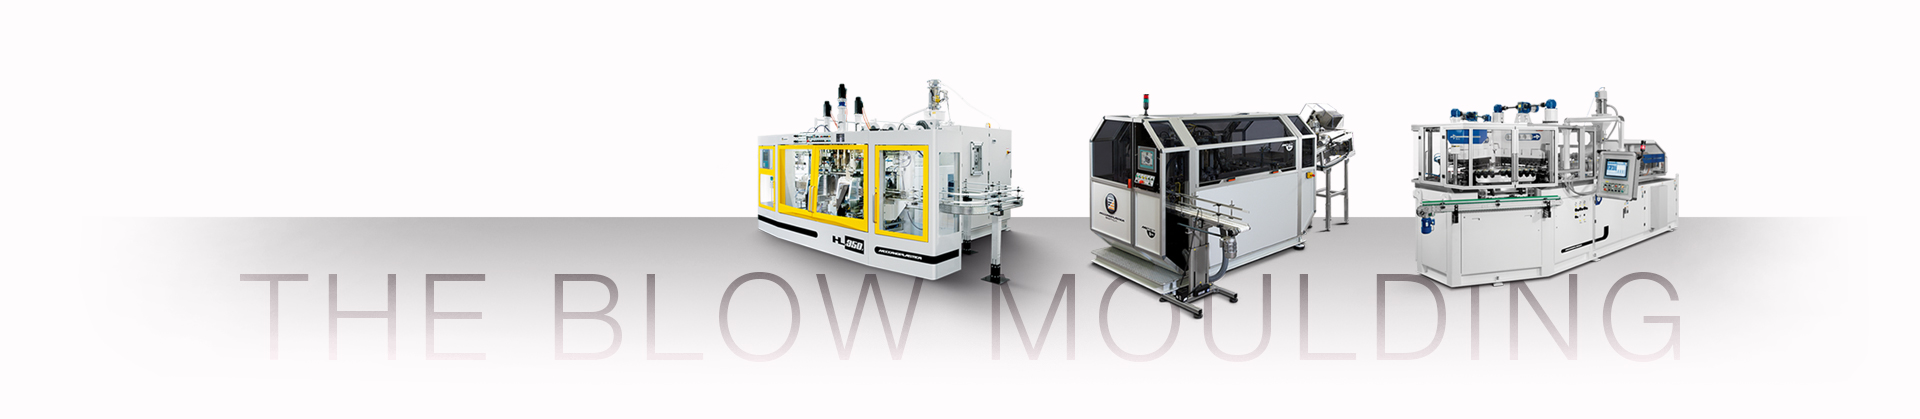 extrusion blow moulding machines injection blow moulding machines stretch blow moulding machines